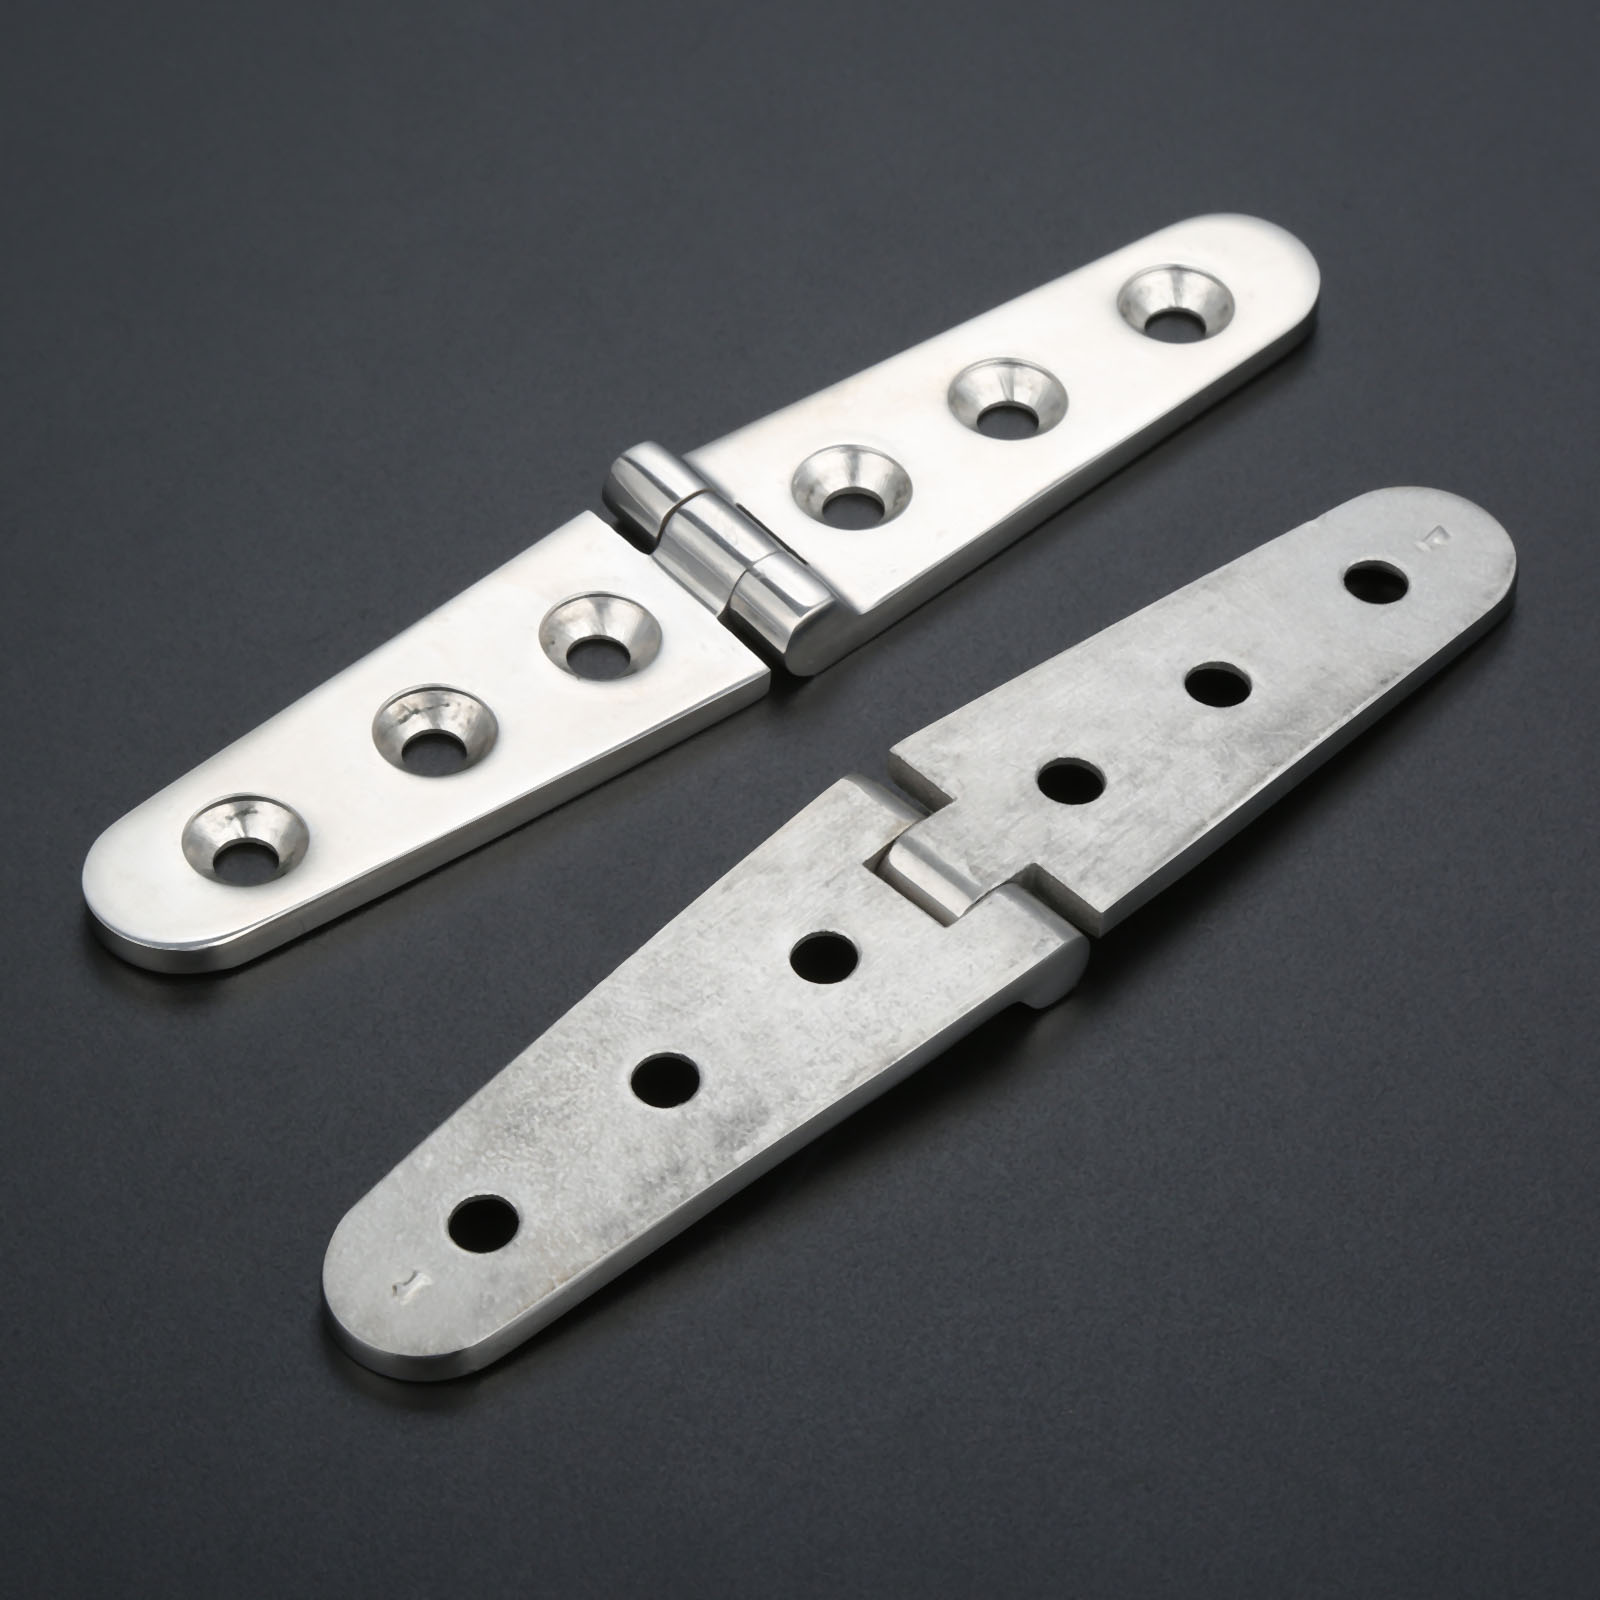 316 Marine Grade Stainless Steel Boat Deck Strap Door Hinge 100 x 25mm